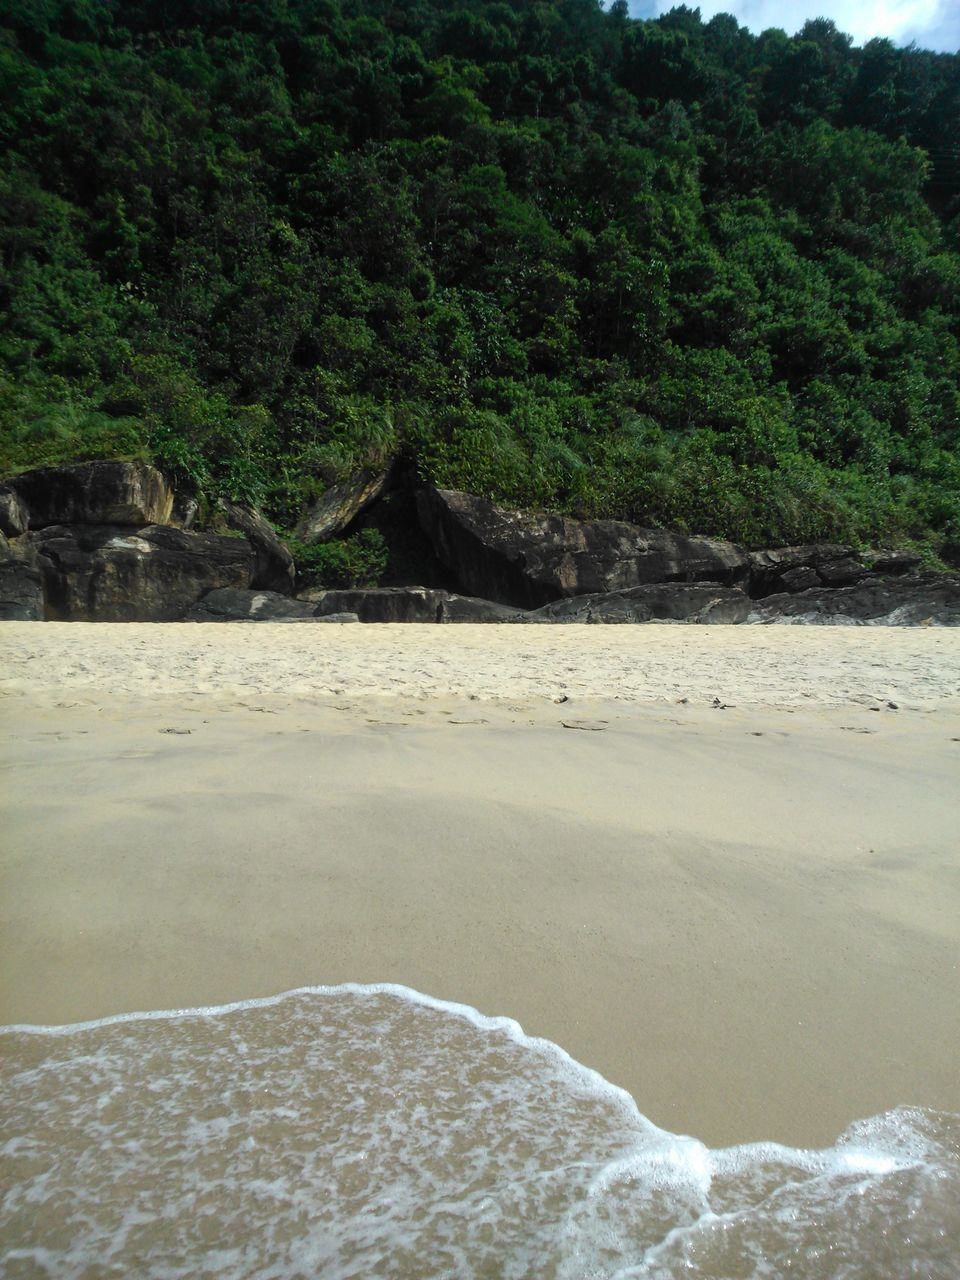 nature, no people, tree, sand, tranquility, tranquil scene, beauty in nature, water, day, outdoors, scenics, beach, sky